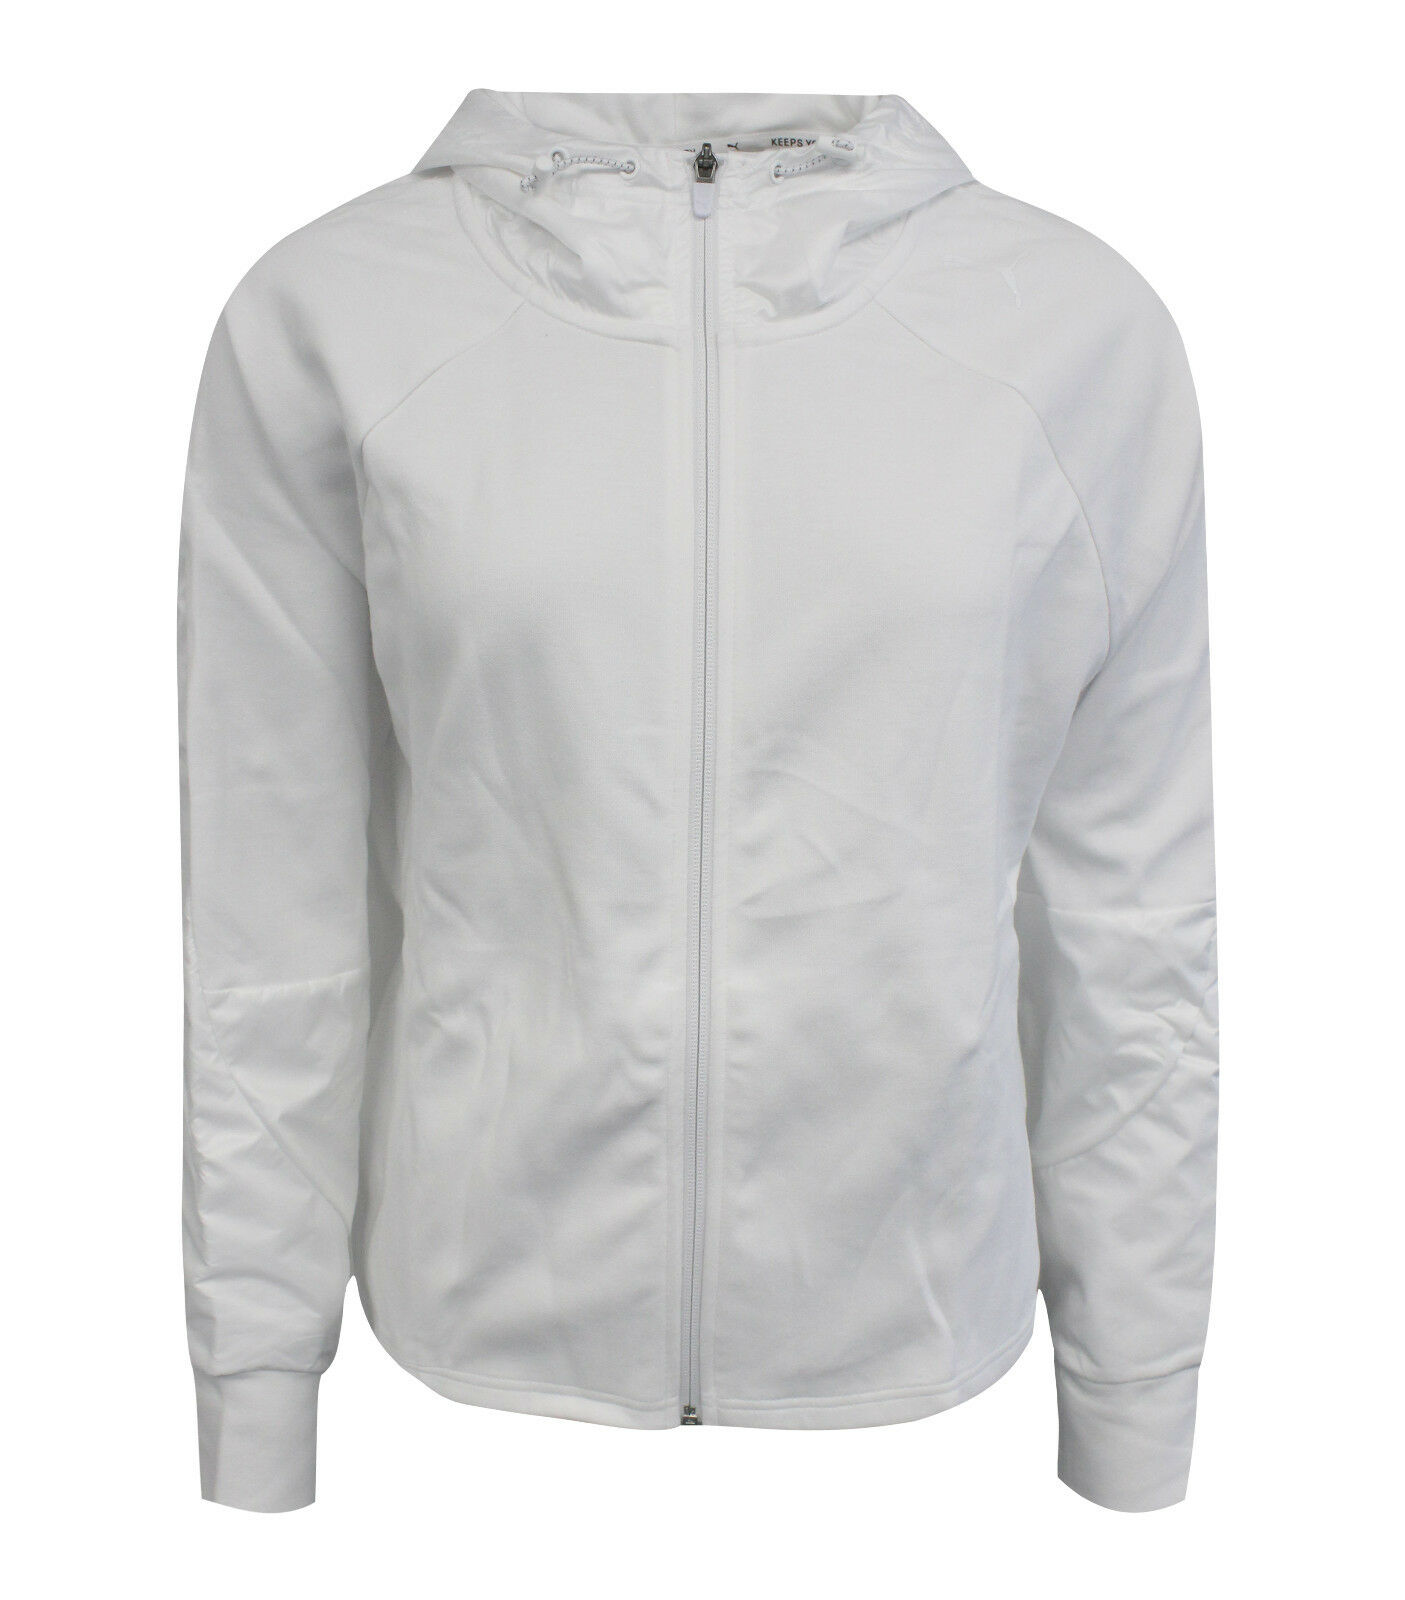 Puma Evostripe Lite Full Zip Womens Hooded Jacket White 853259 03 Y10A